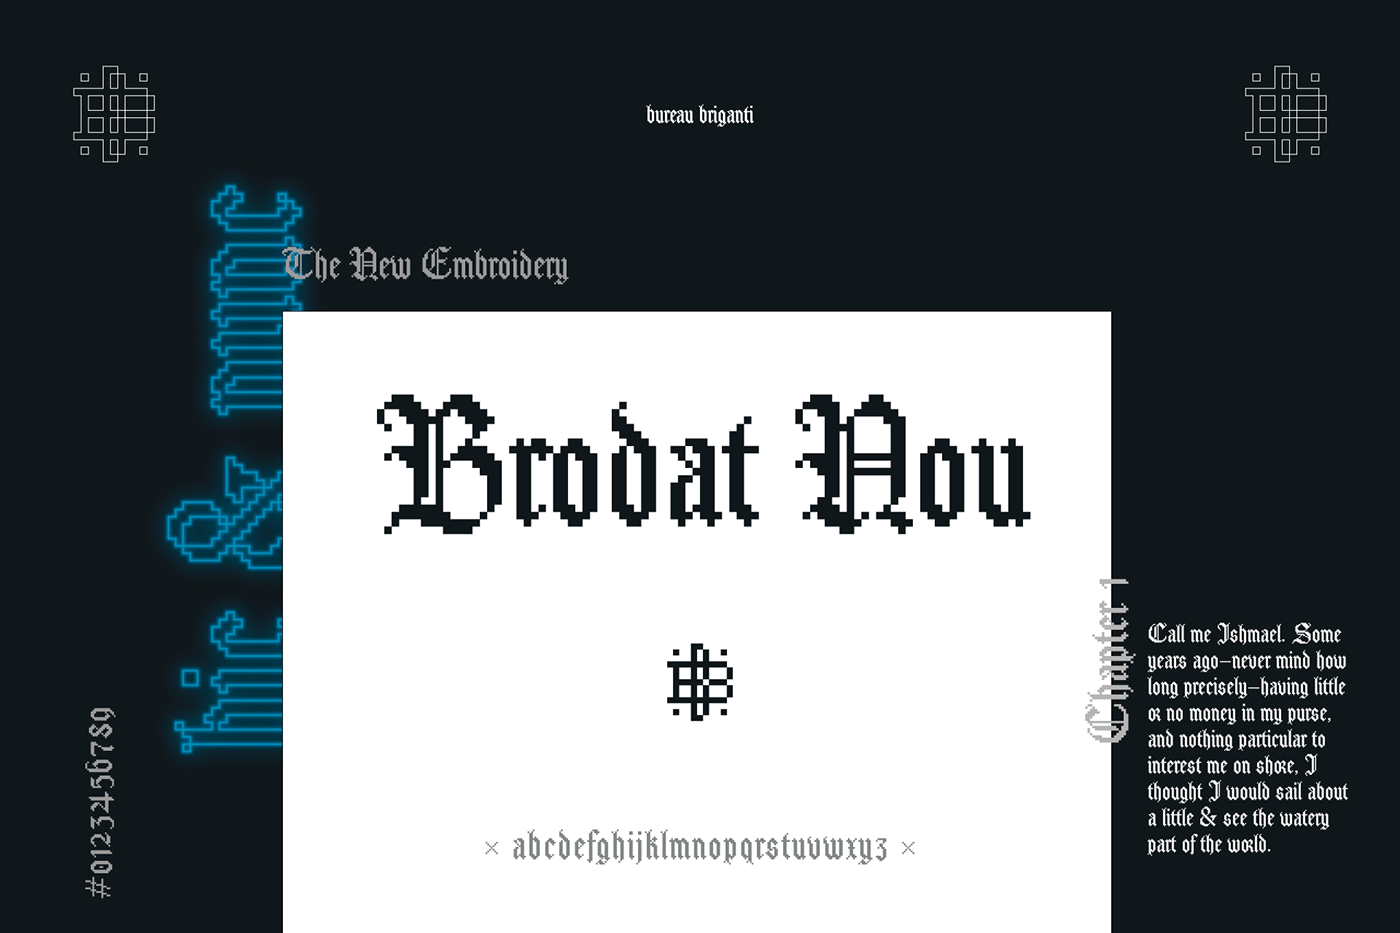 Blackletter gothic pixel typography   font Embroidery brodat textura